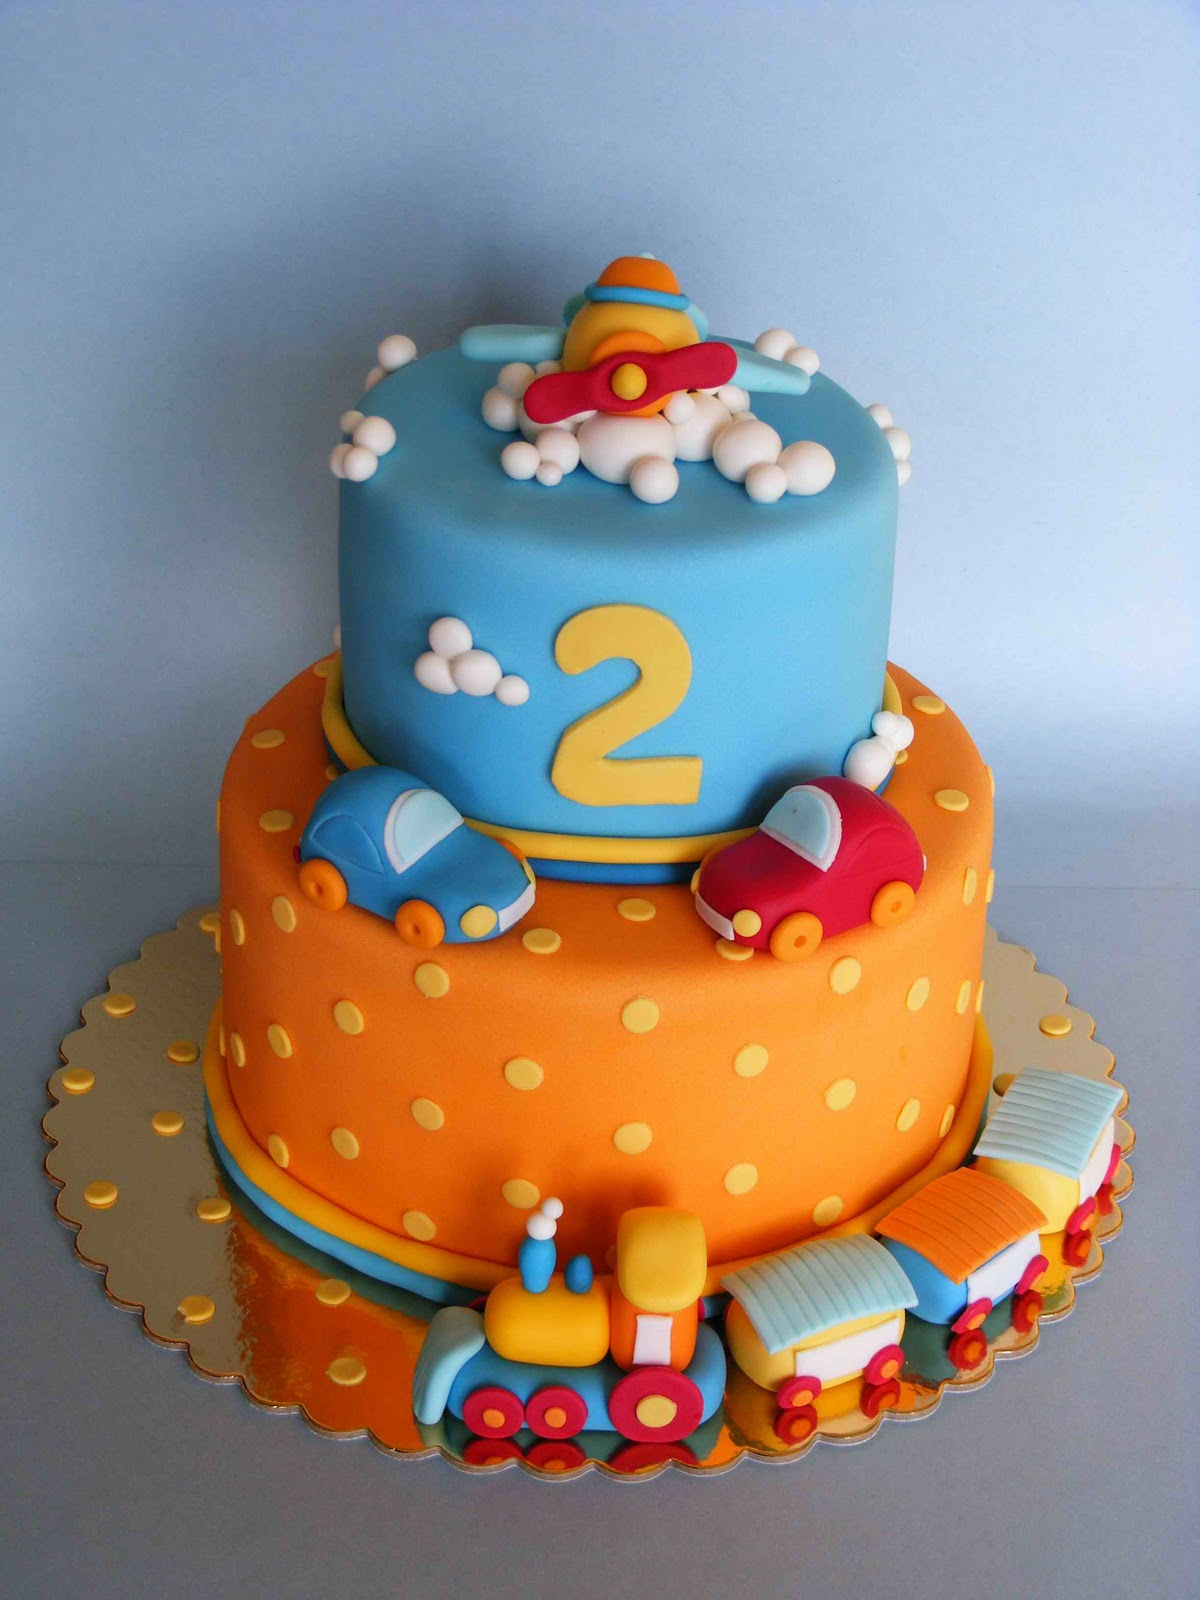 Birthday Cake Ideas For 2nd Birthday Boy : Bubolinkata: ???????? 2011